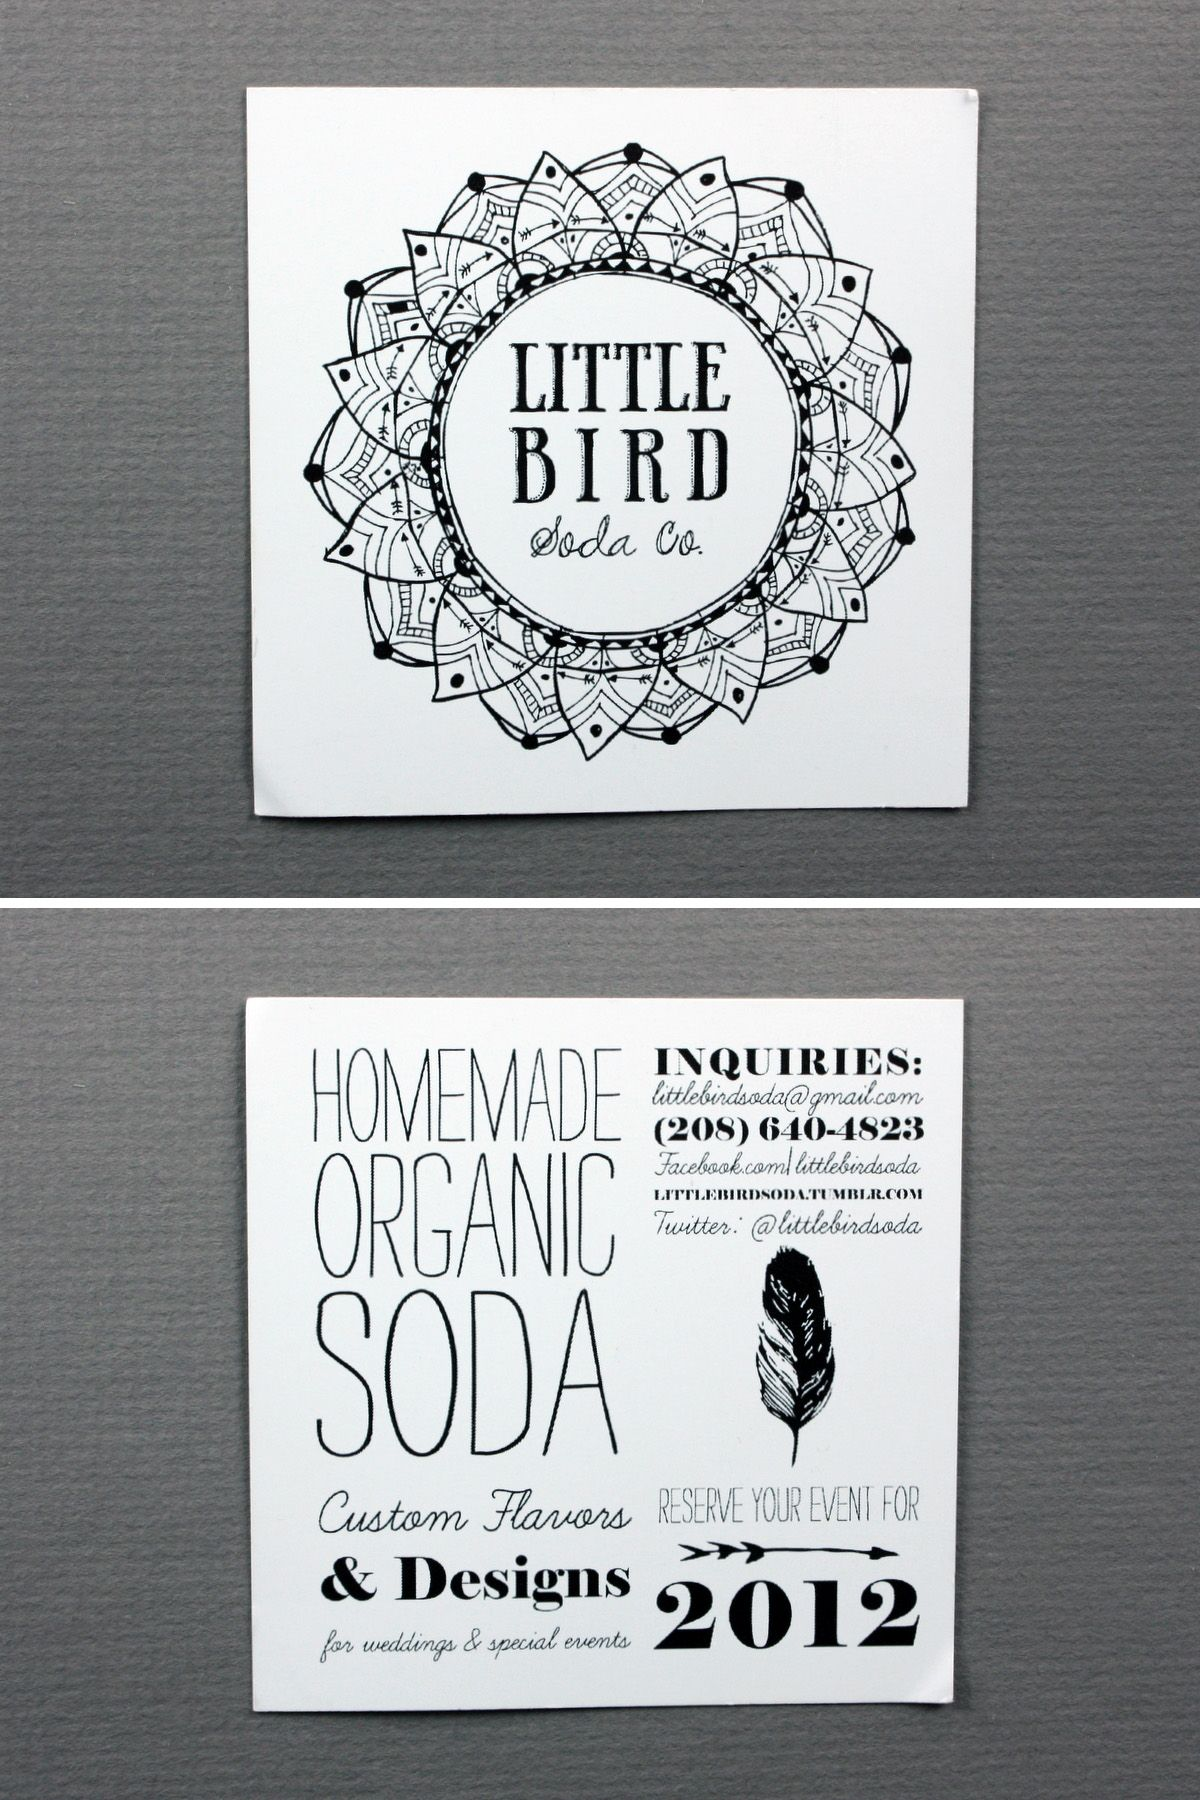 Little Bird Soda Co. littlebirdsoda.tumblr.com | Image is Everything ...